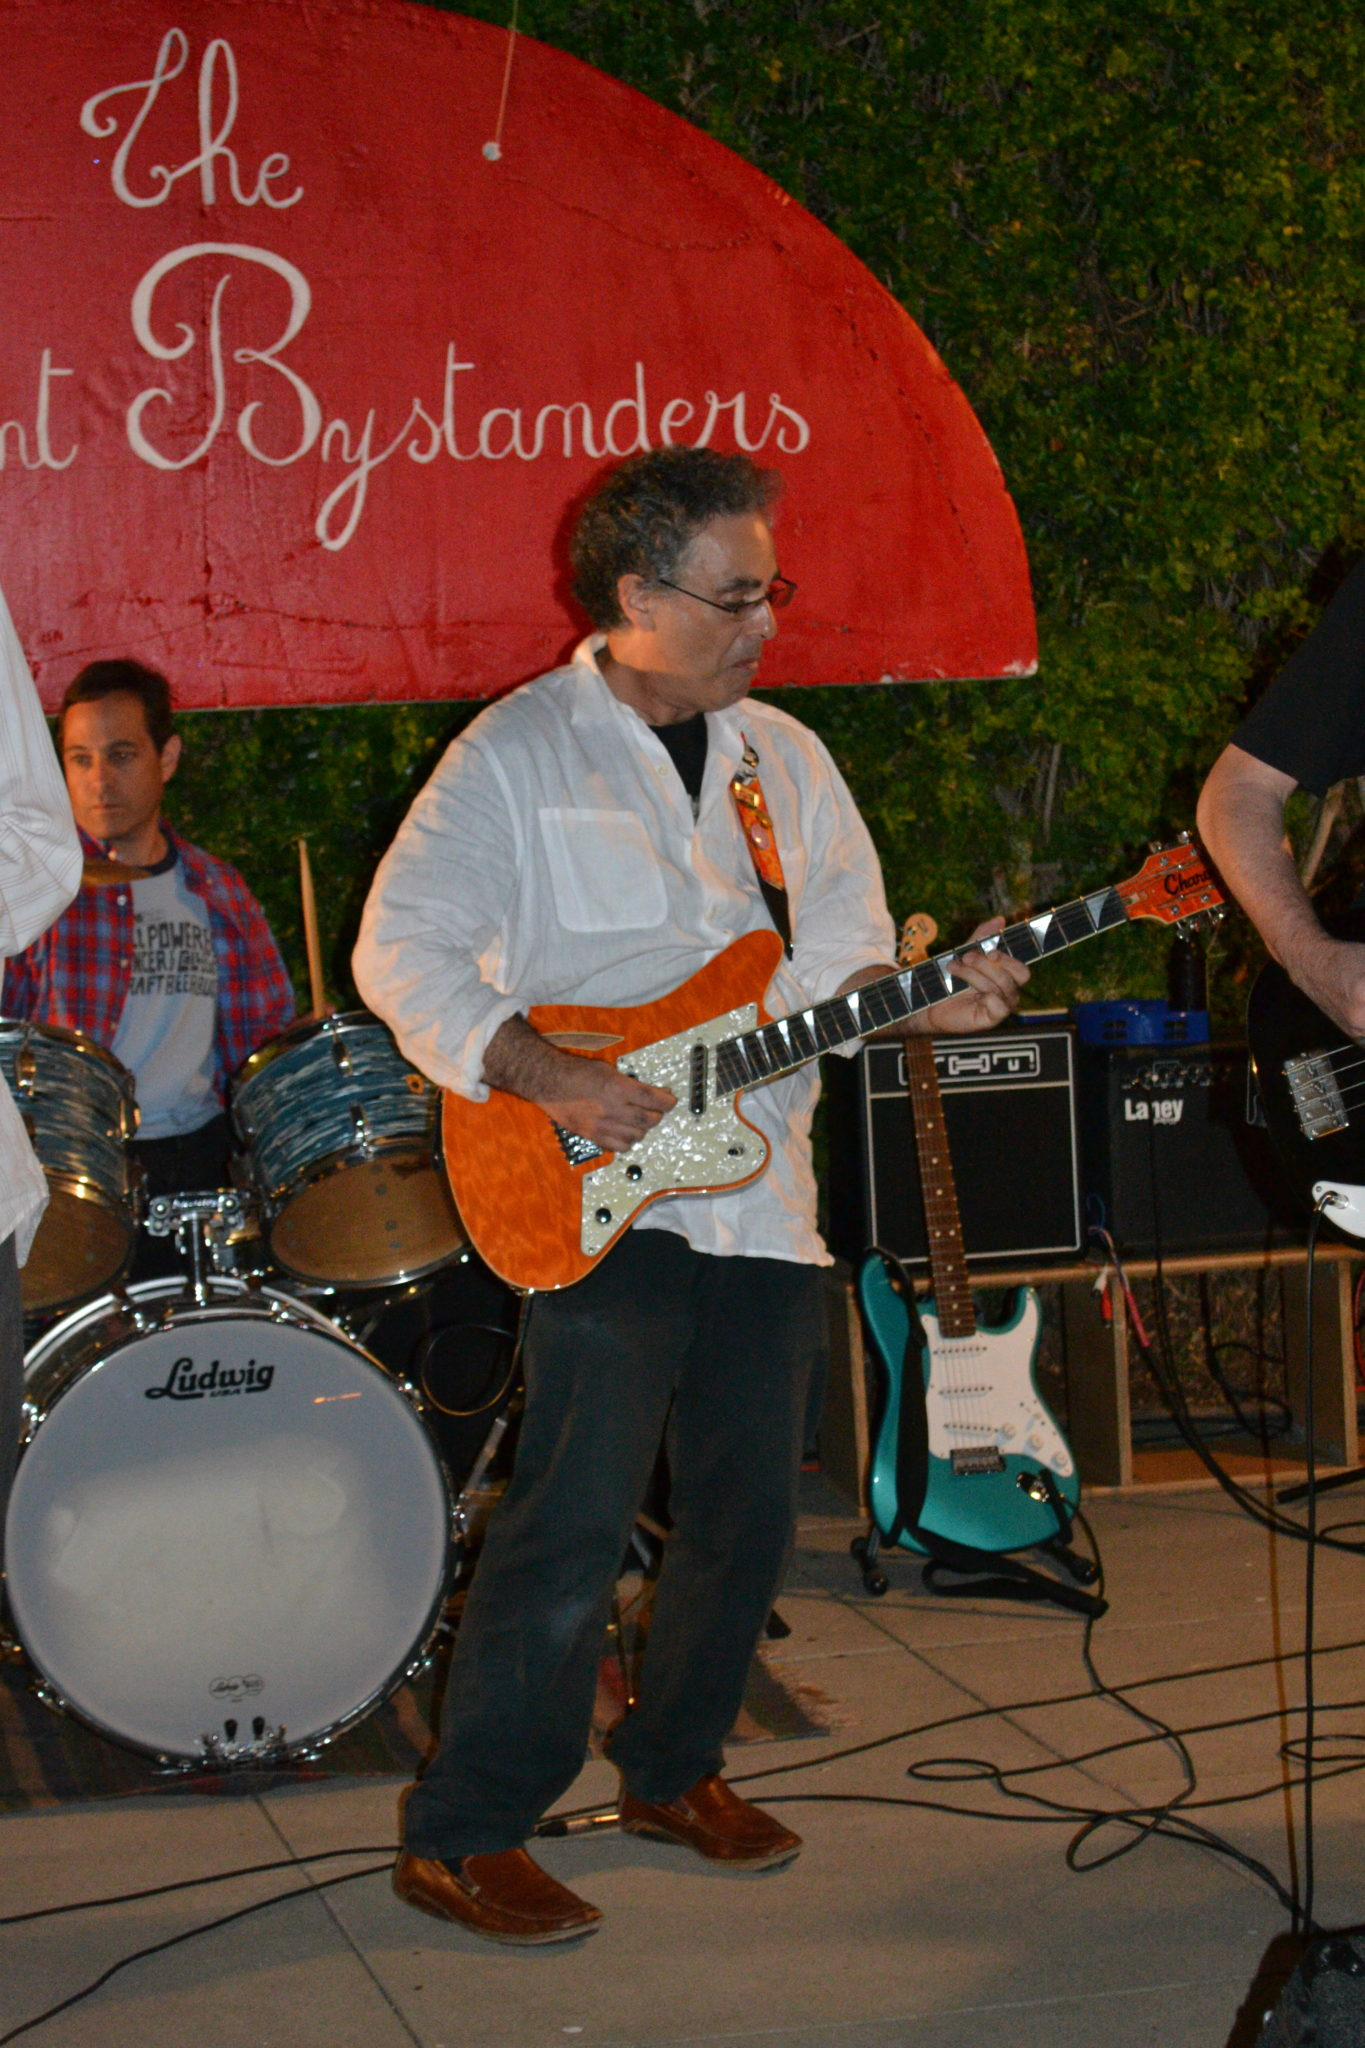 The Innocent Bystanders perform live music at a house party in Kensington.